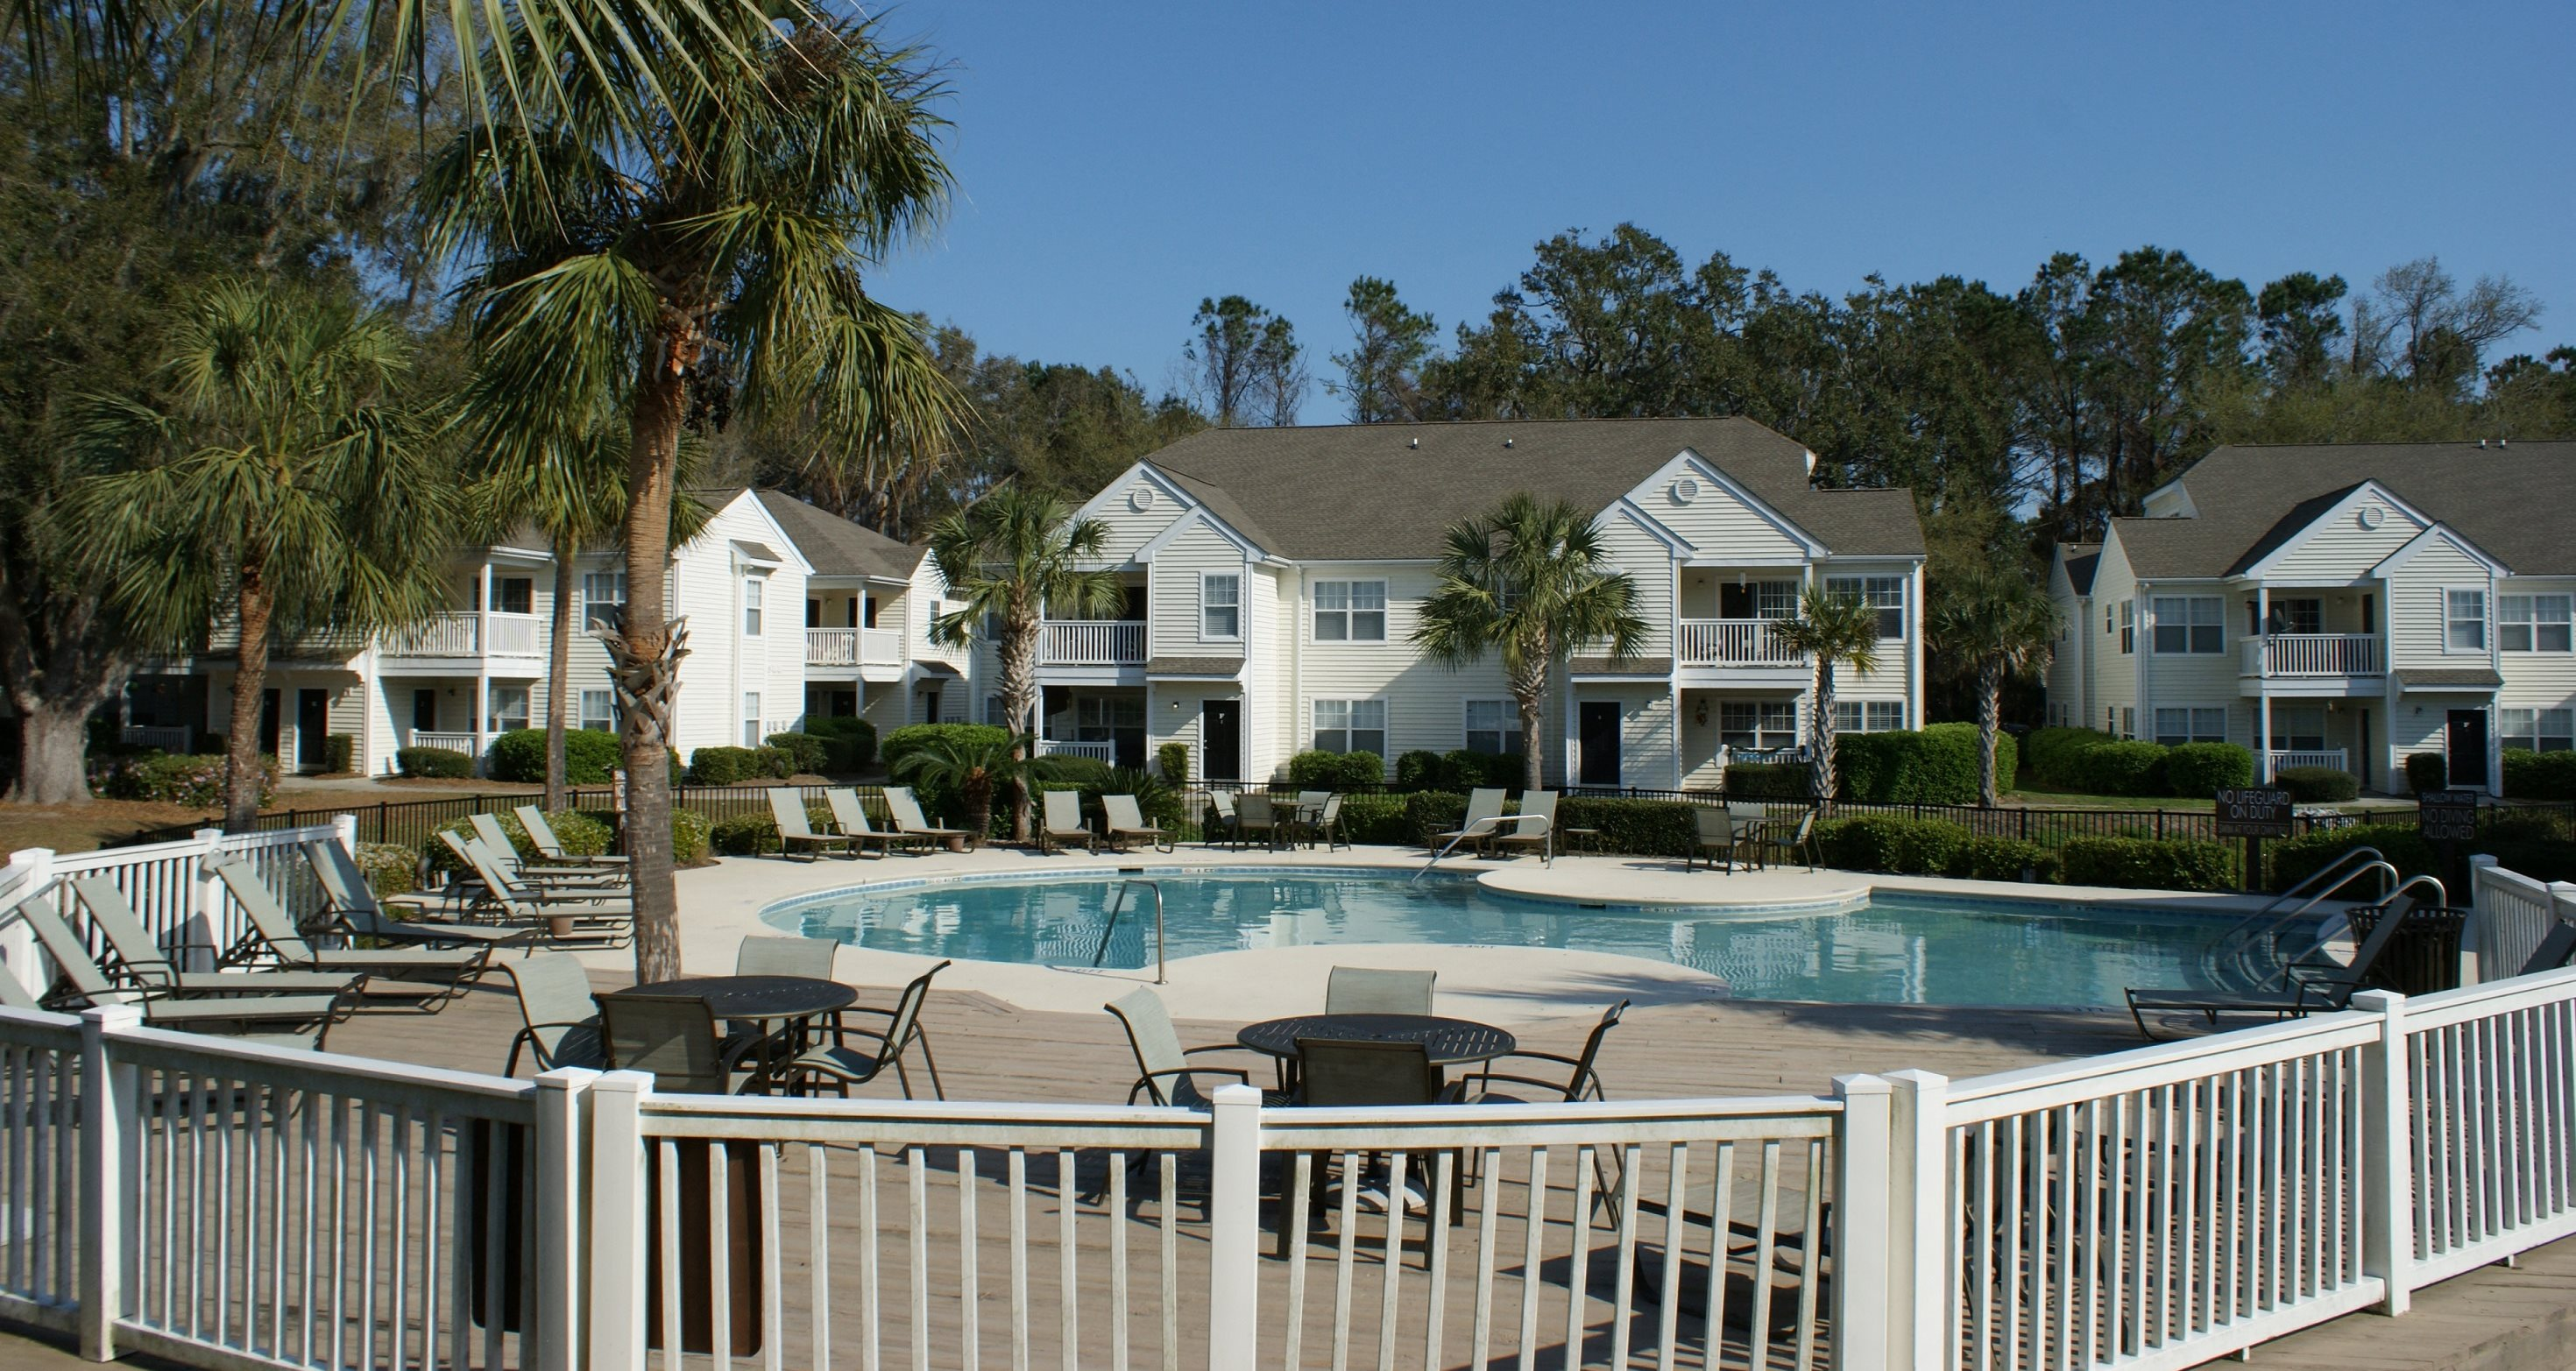 Apartments in bluffton sc the lakes at edgewater for The edgewater house